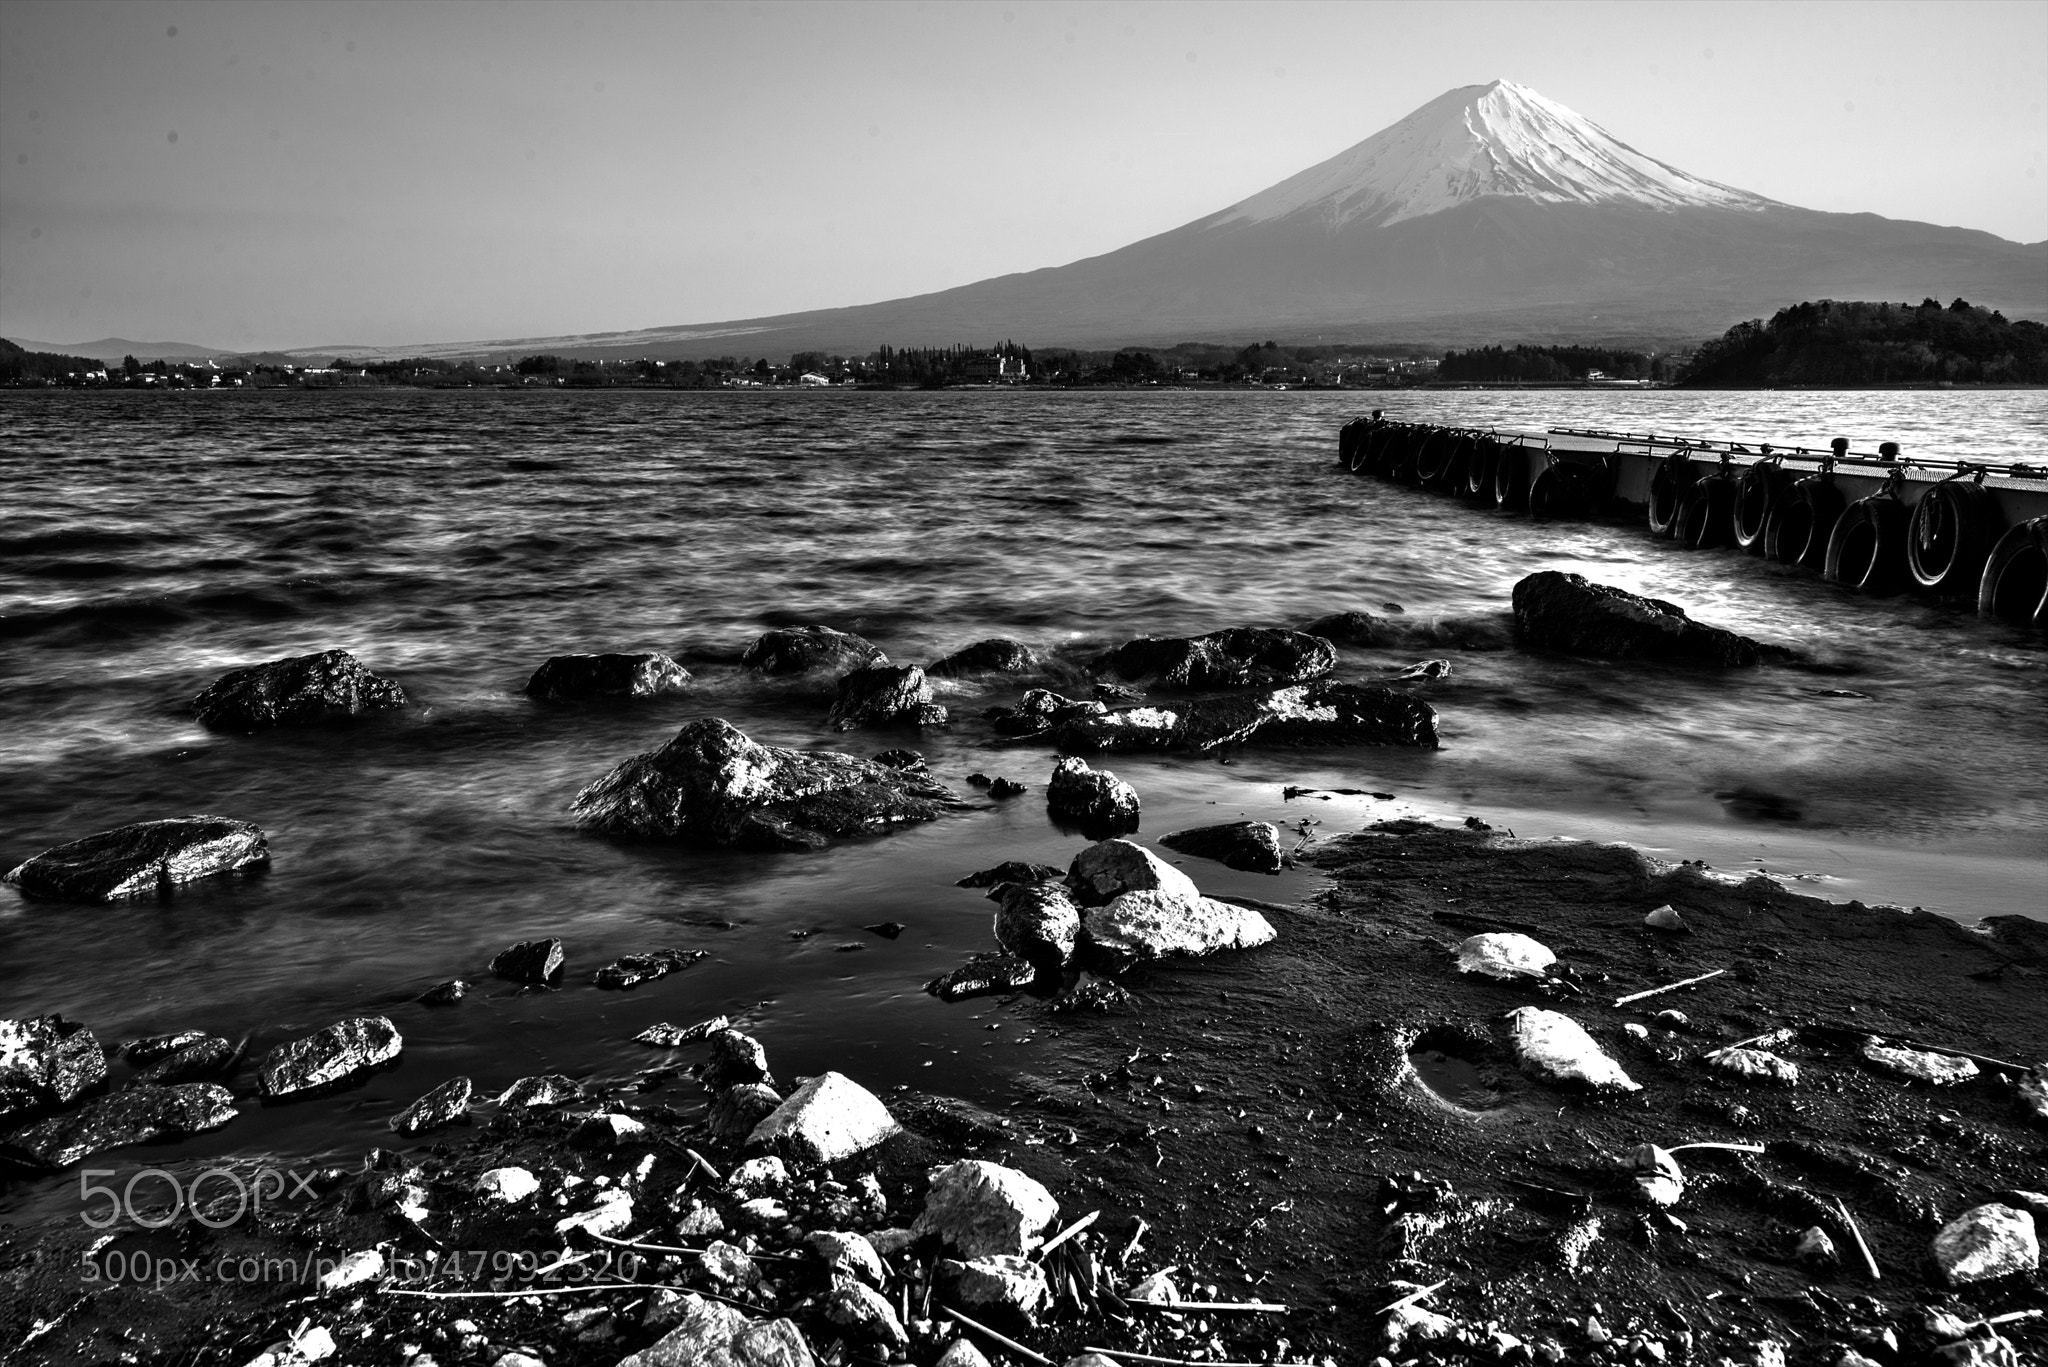 Photograph Mt Fuji Tranquility by hugh dornan on 500px